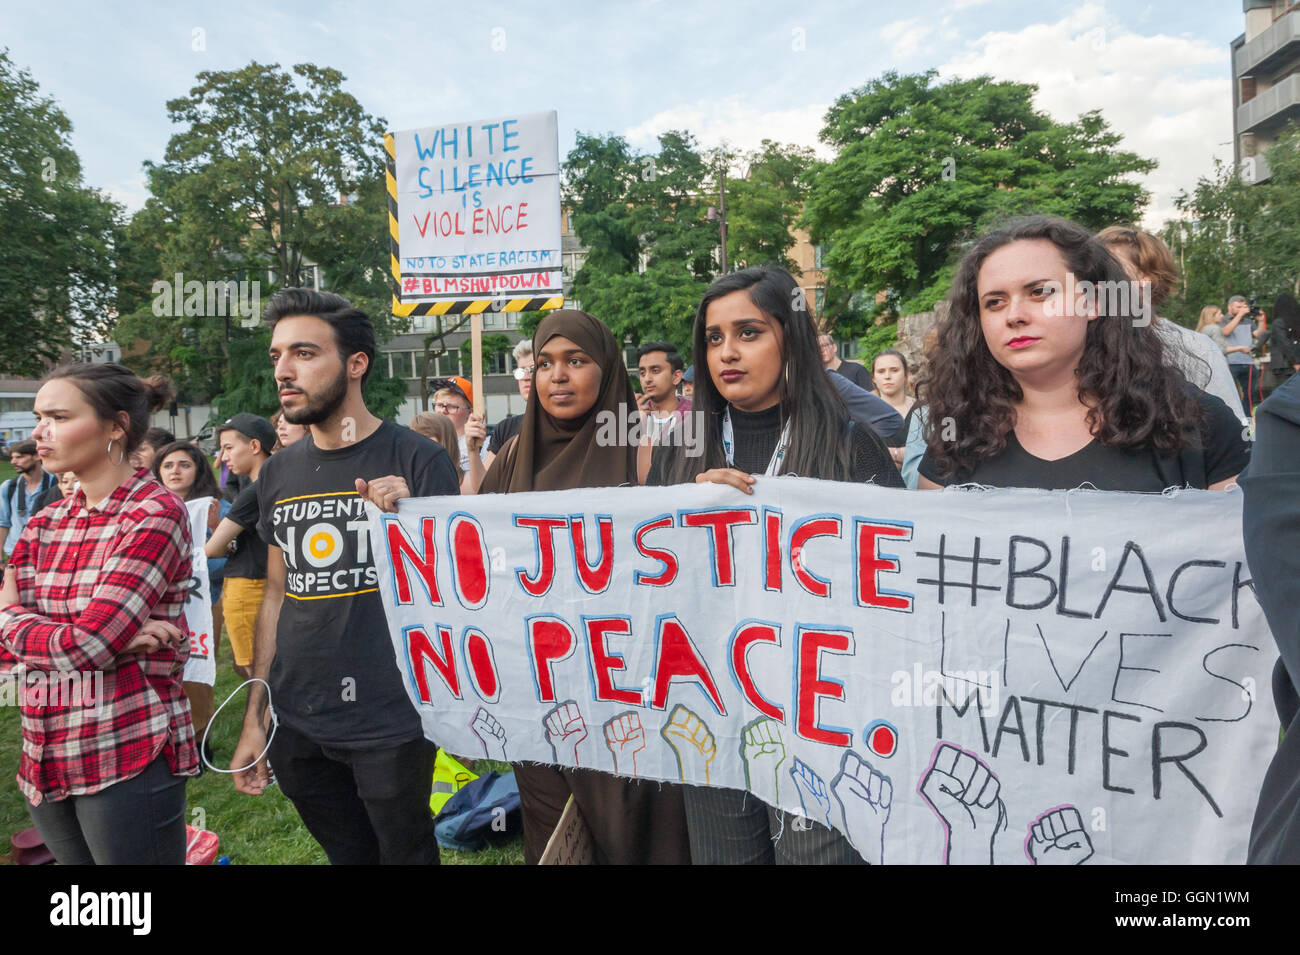 London, UK. 5th August 2016. Five years and a day after the killing of Mark Duggan a large crowd meets in Altab - Stock Image